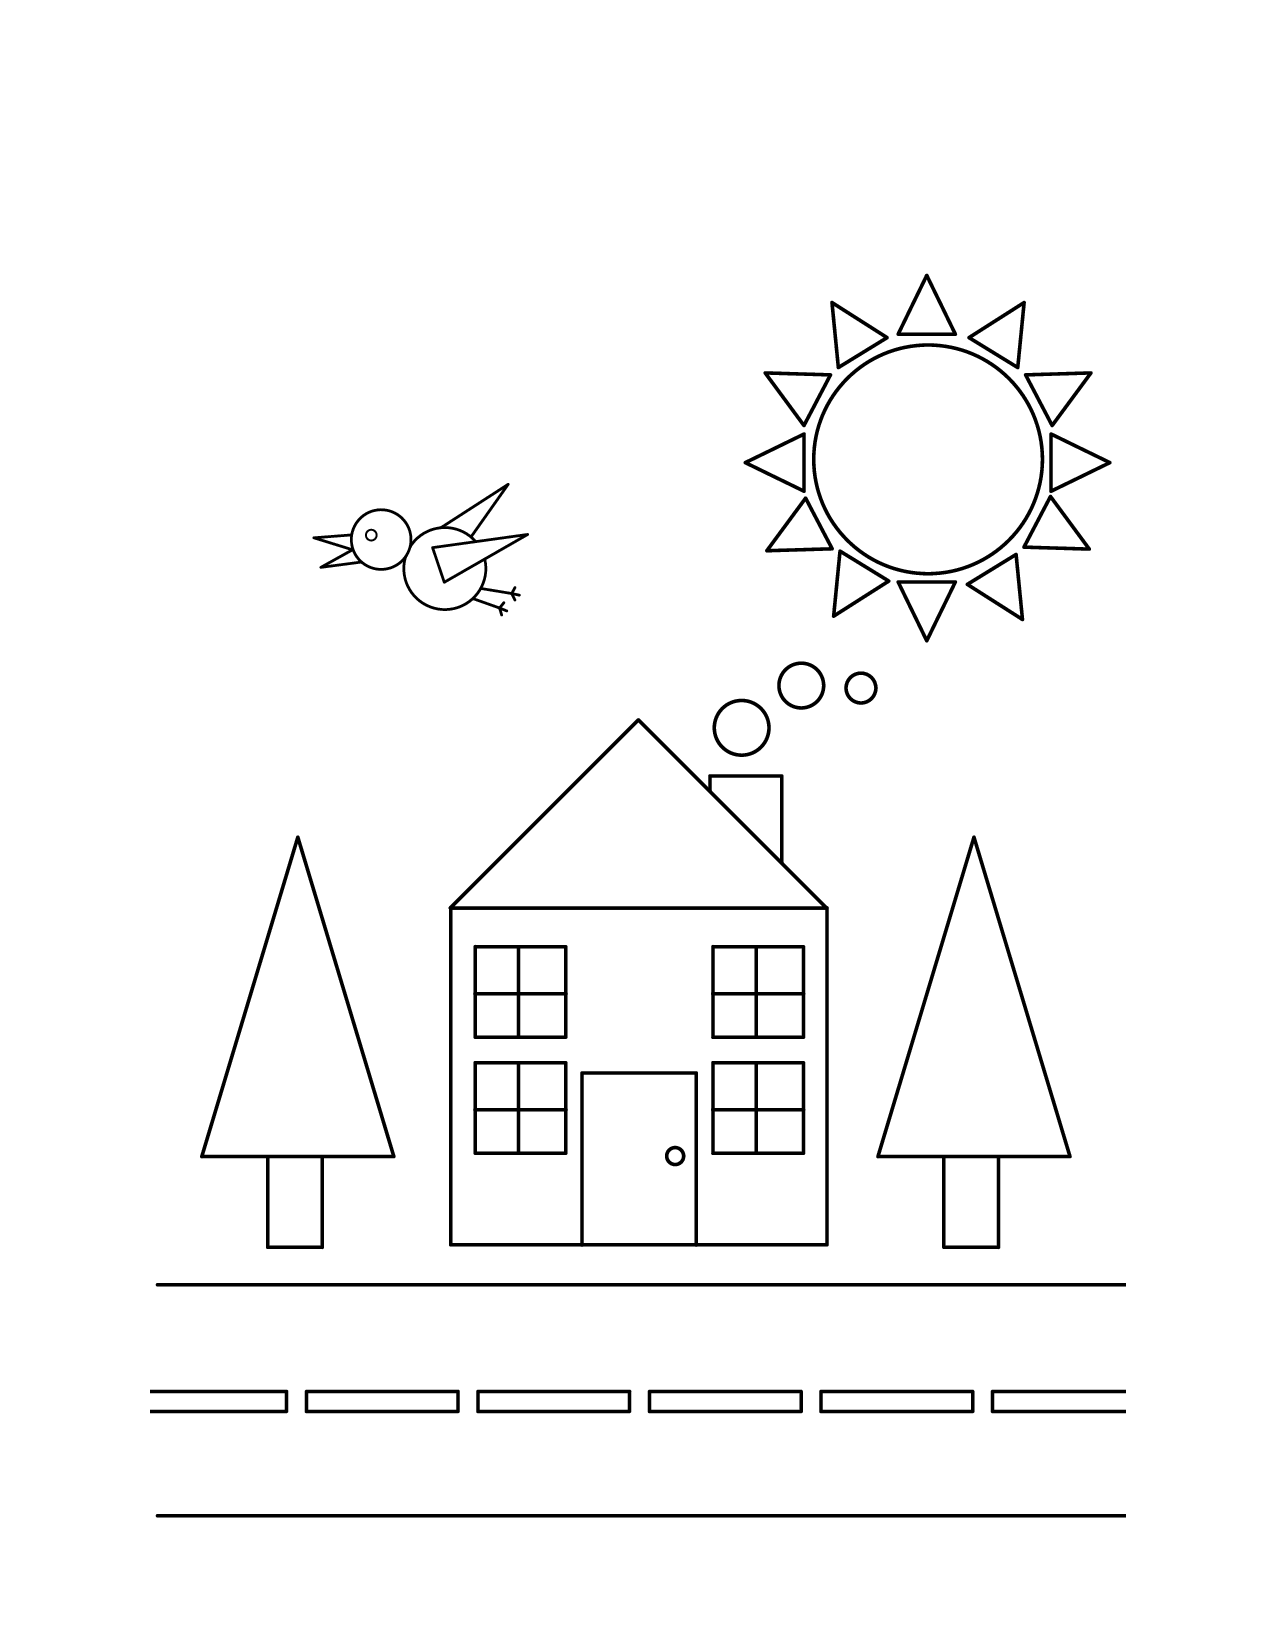 coloring simple shapes 20 free printable shapes coloring pages simple shapes coloring